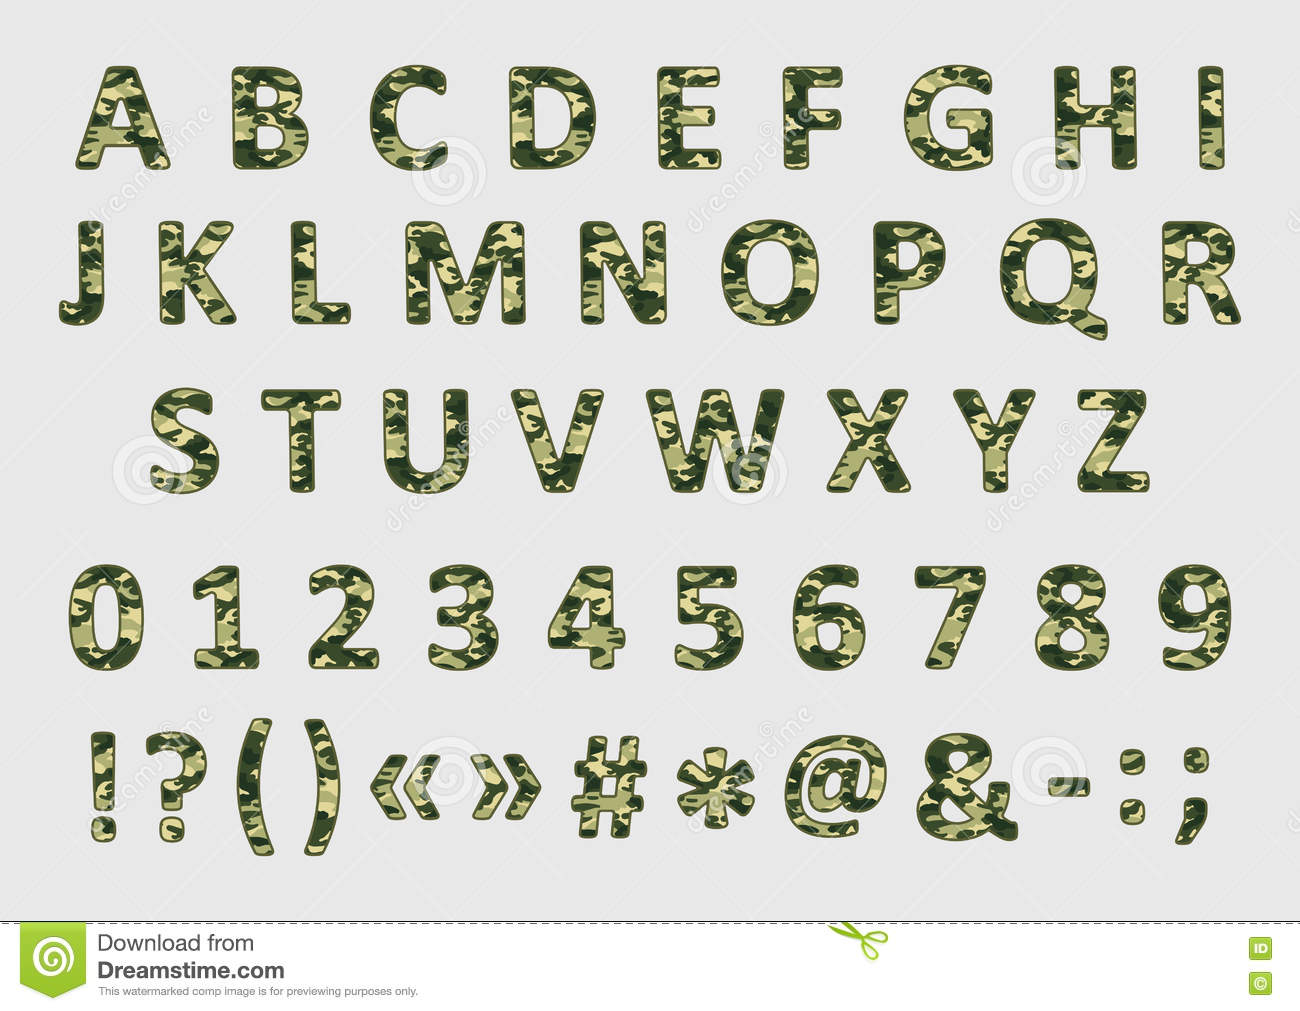 Military Camouflage Font, Vector Stock Vector - Image: 72859764